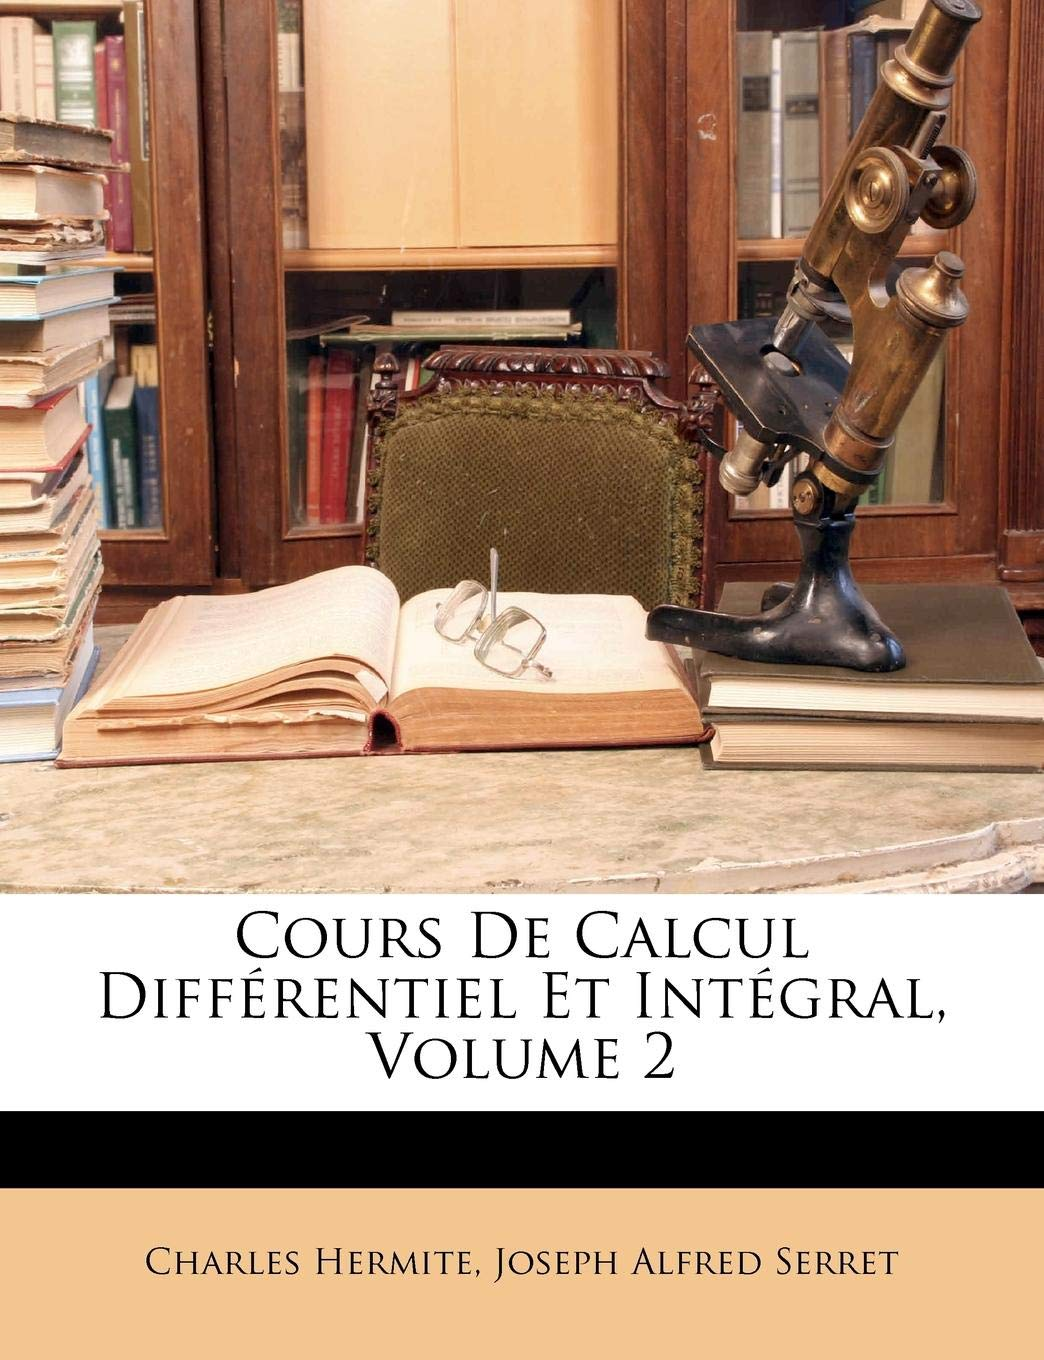 Cours de Calcul Differentiel Et Integral, Volume 2